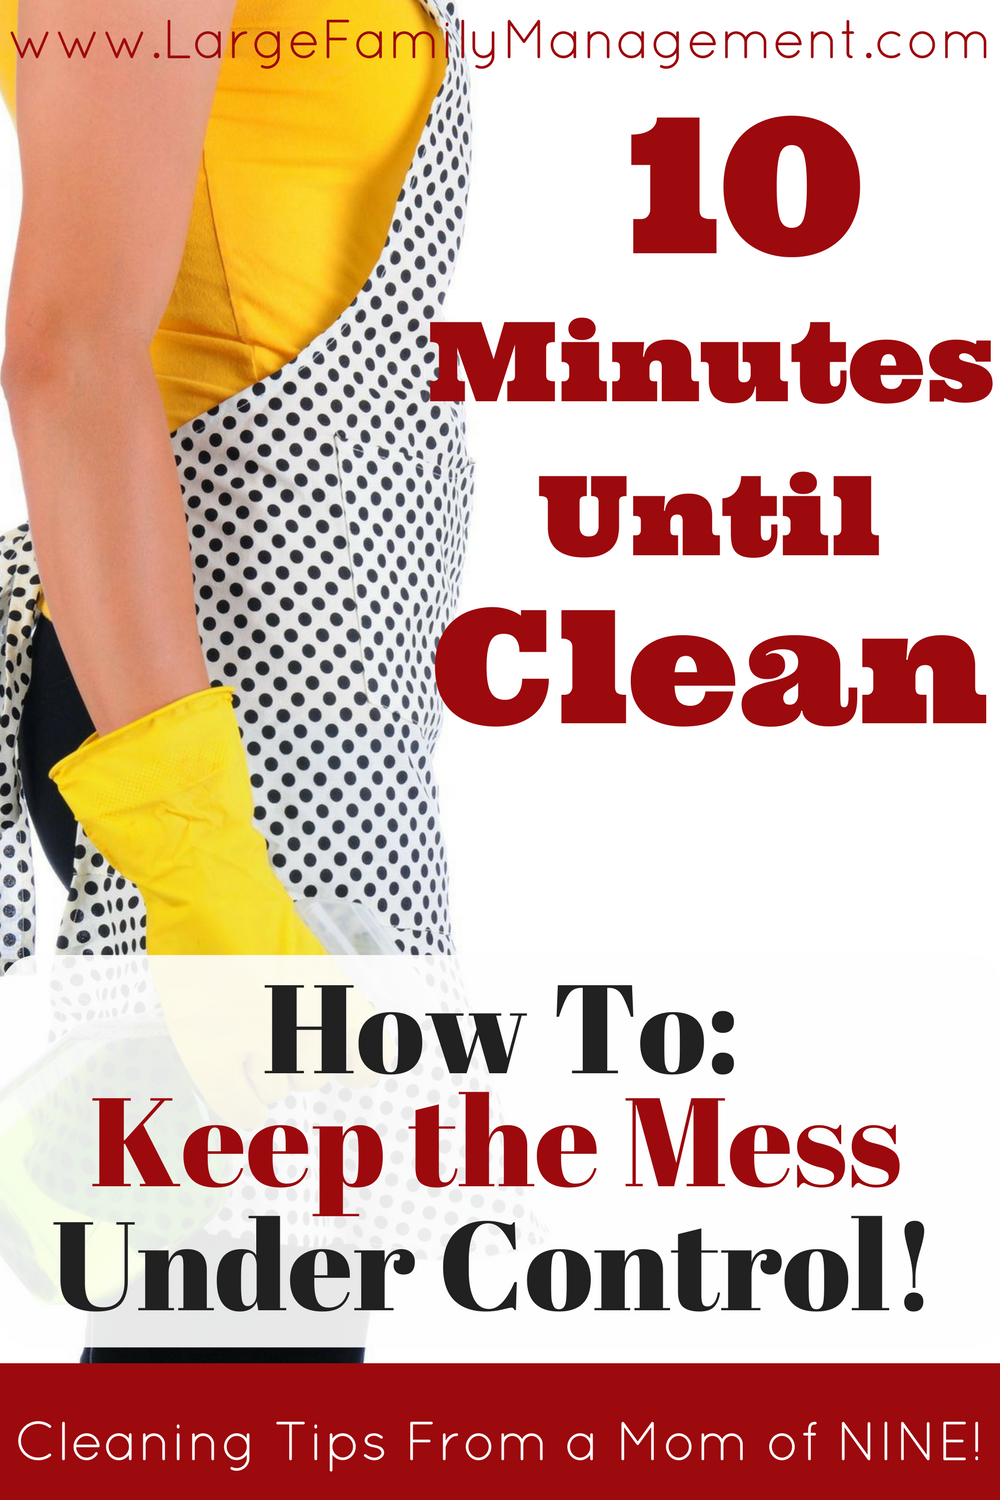 Large Family Cleaning Tips from a Mom of 9! This large family mom keeps her house picked up, here's how. Large Family Management|Large Family Tips